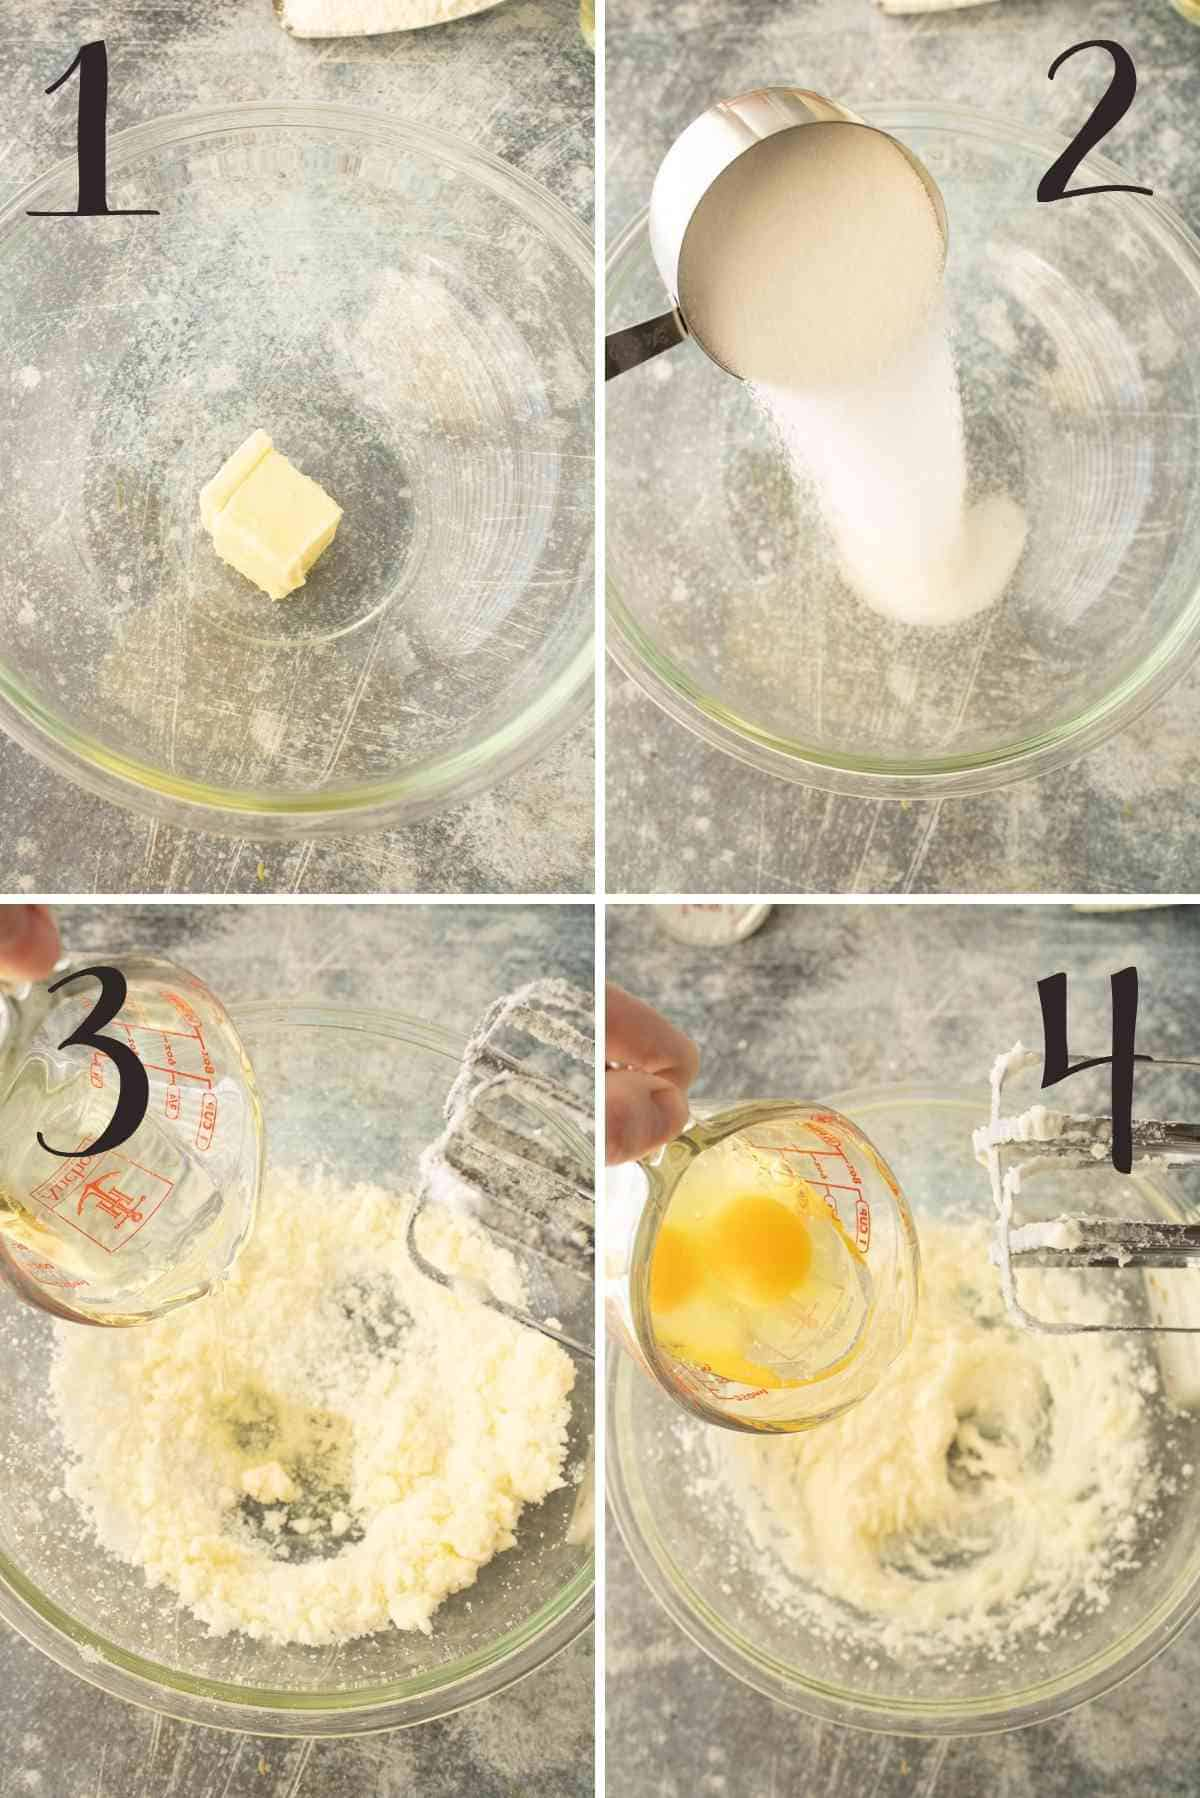 Butter, sugar, eggs and olive oil in a mixing bowl and creamed.